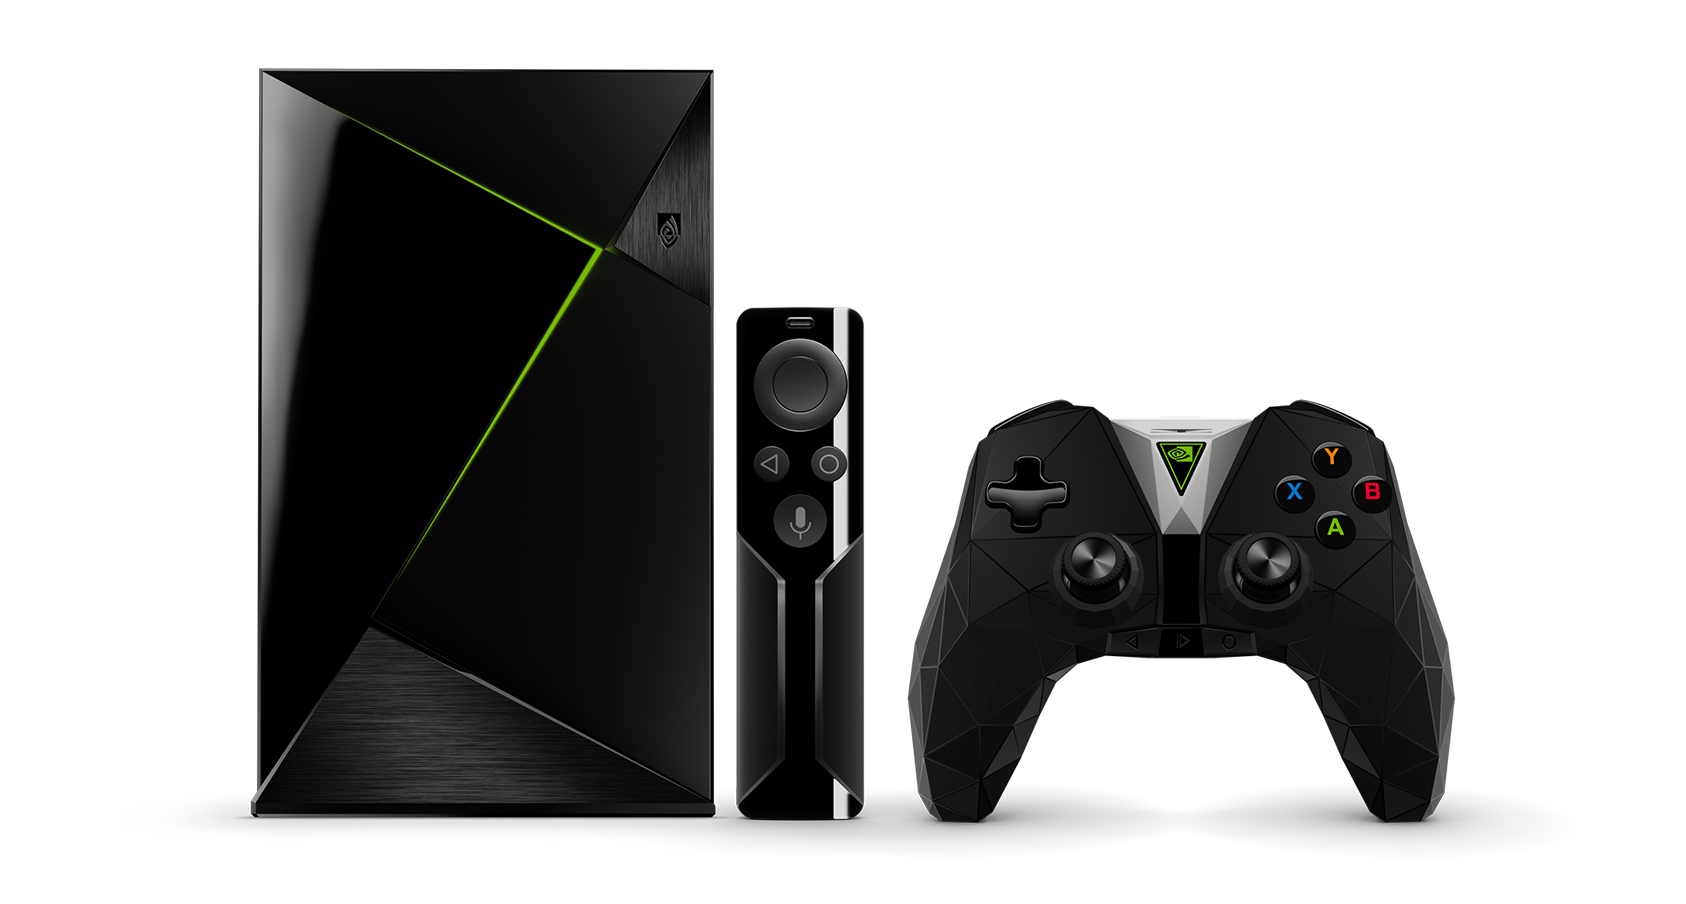 The 500 GB Nvidia Shield Pro device beside its accessories